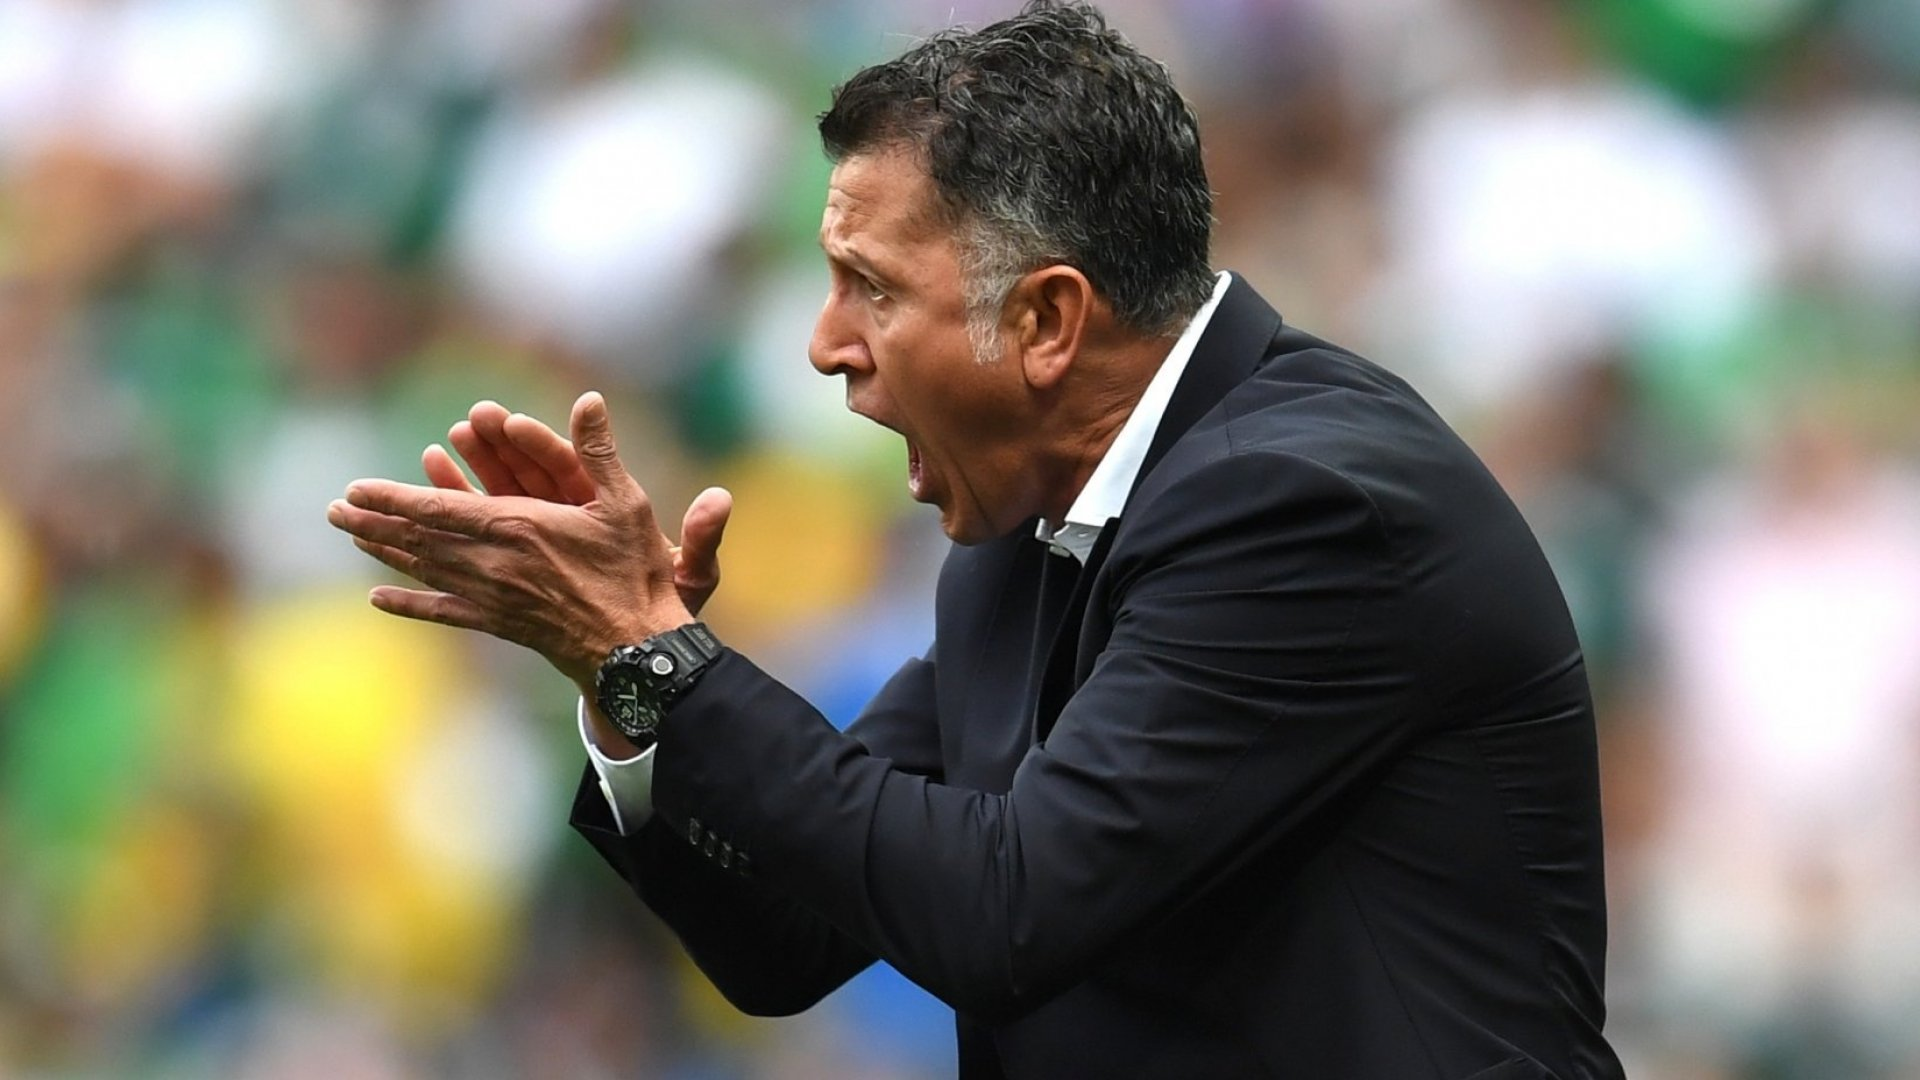 Need to Inspire Your Team During Challenging Times? Take This Advice From Mexico's Extraordinary World Cup Coach